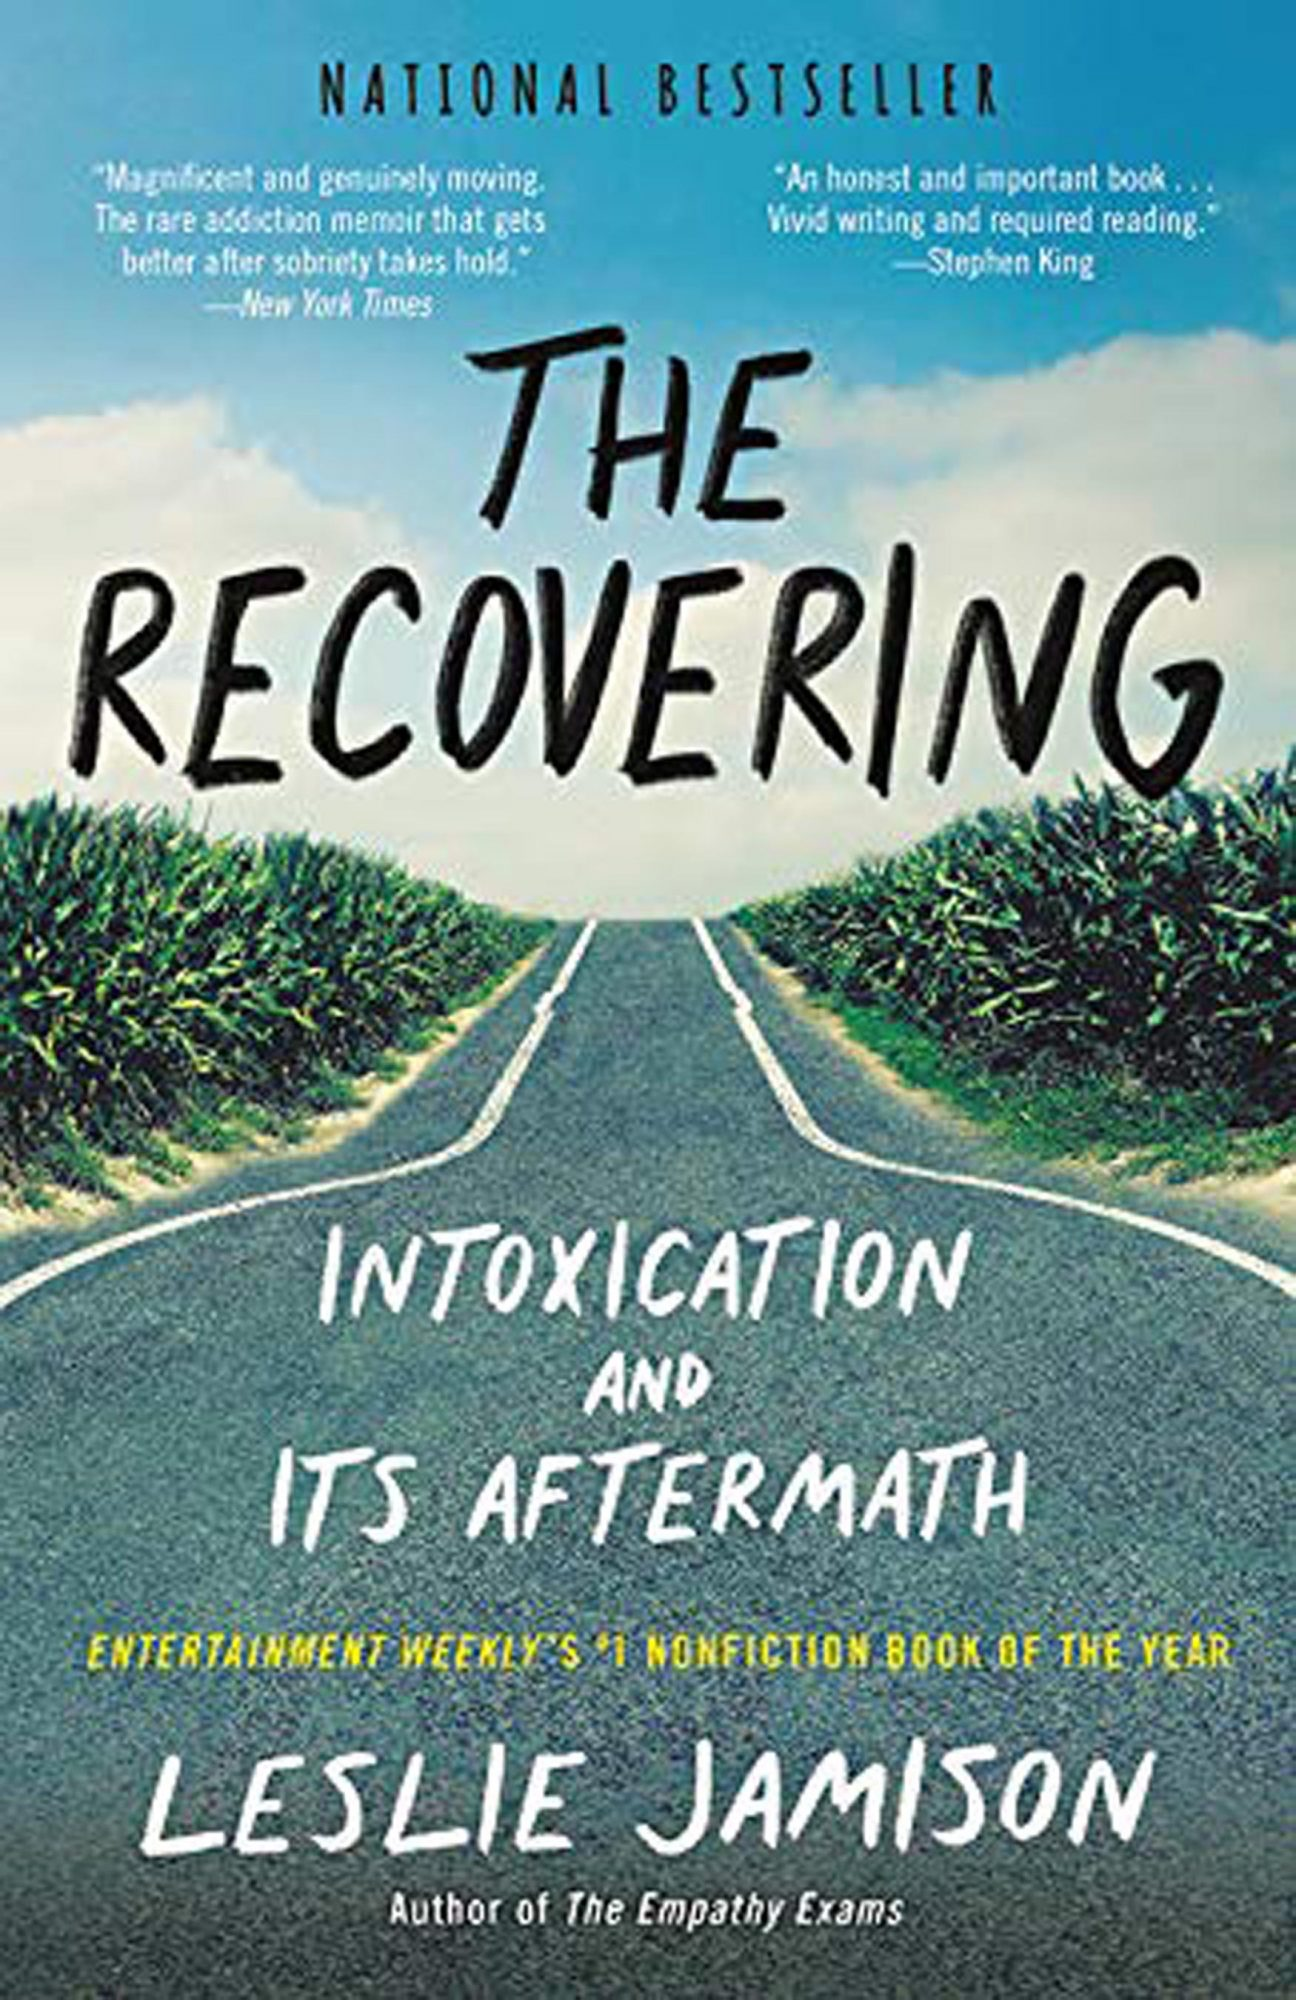 The Recovering, by Leslie Jamison